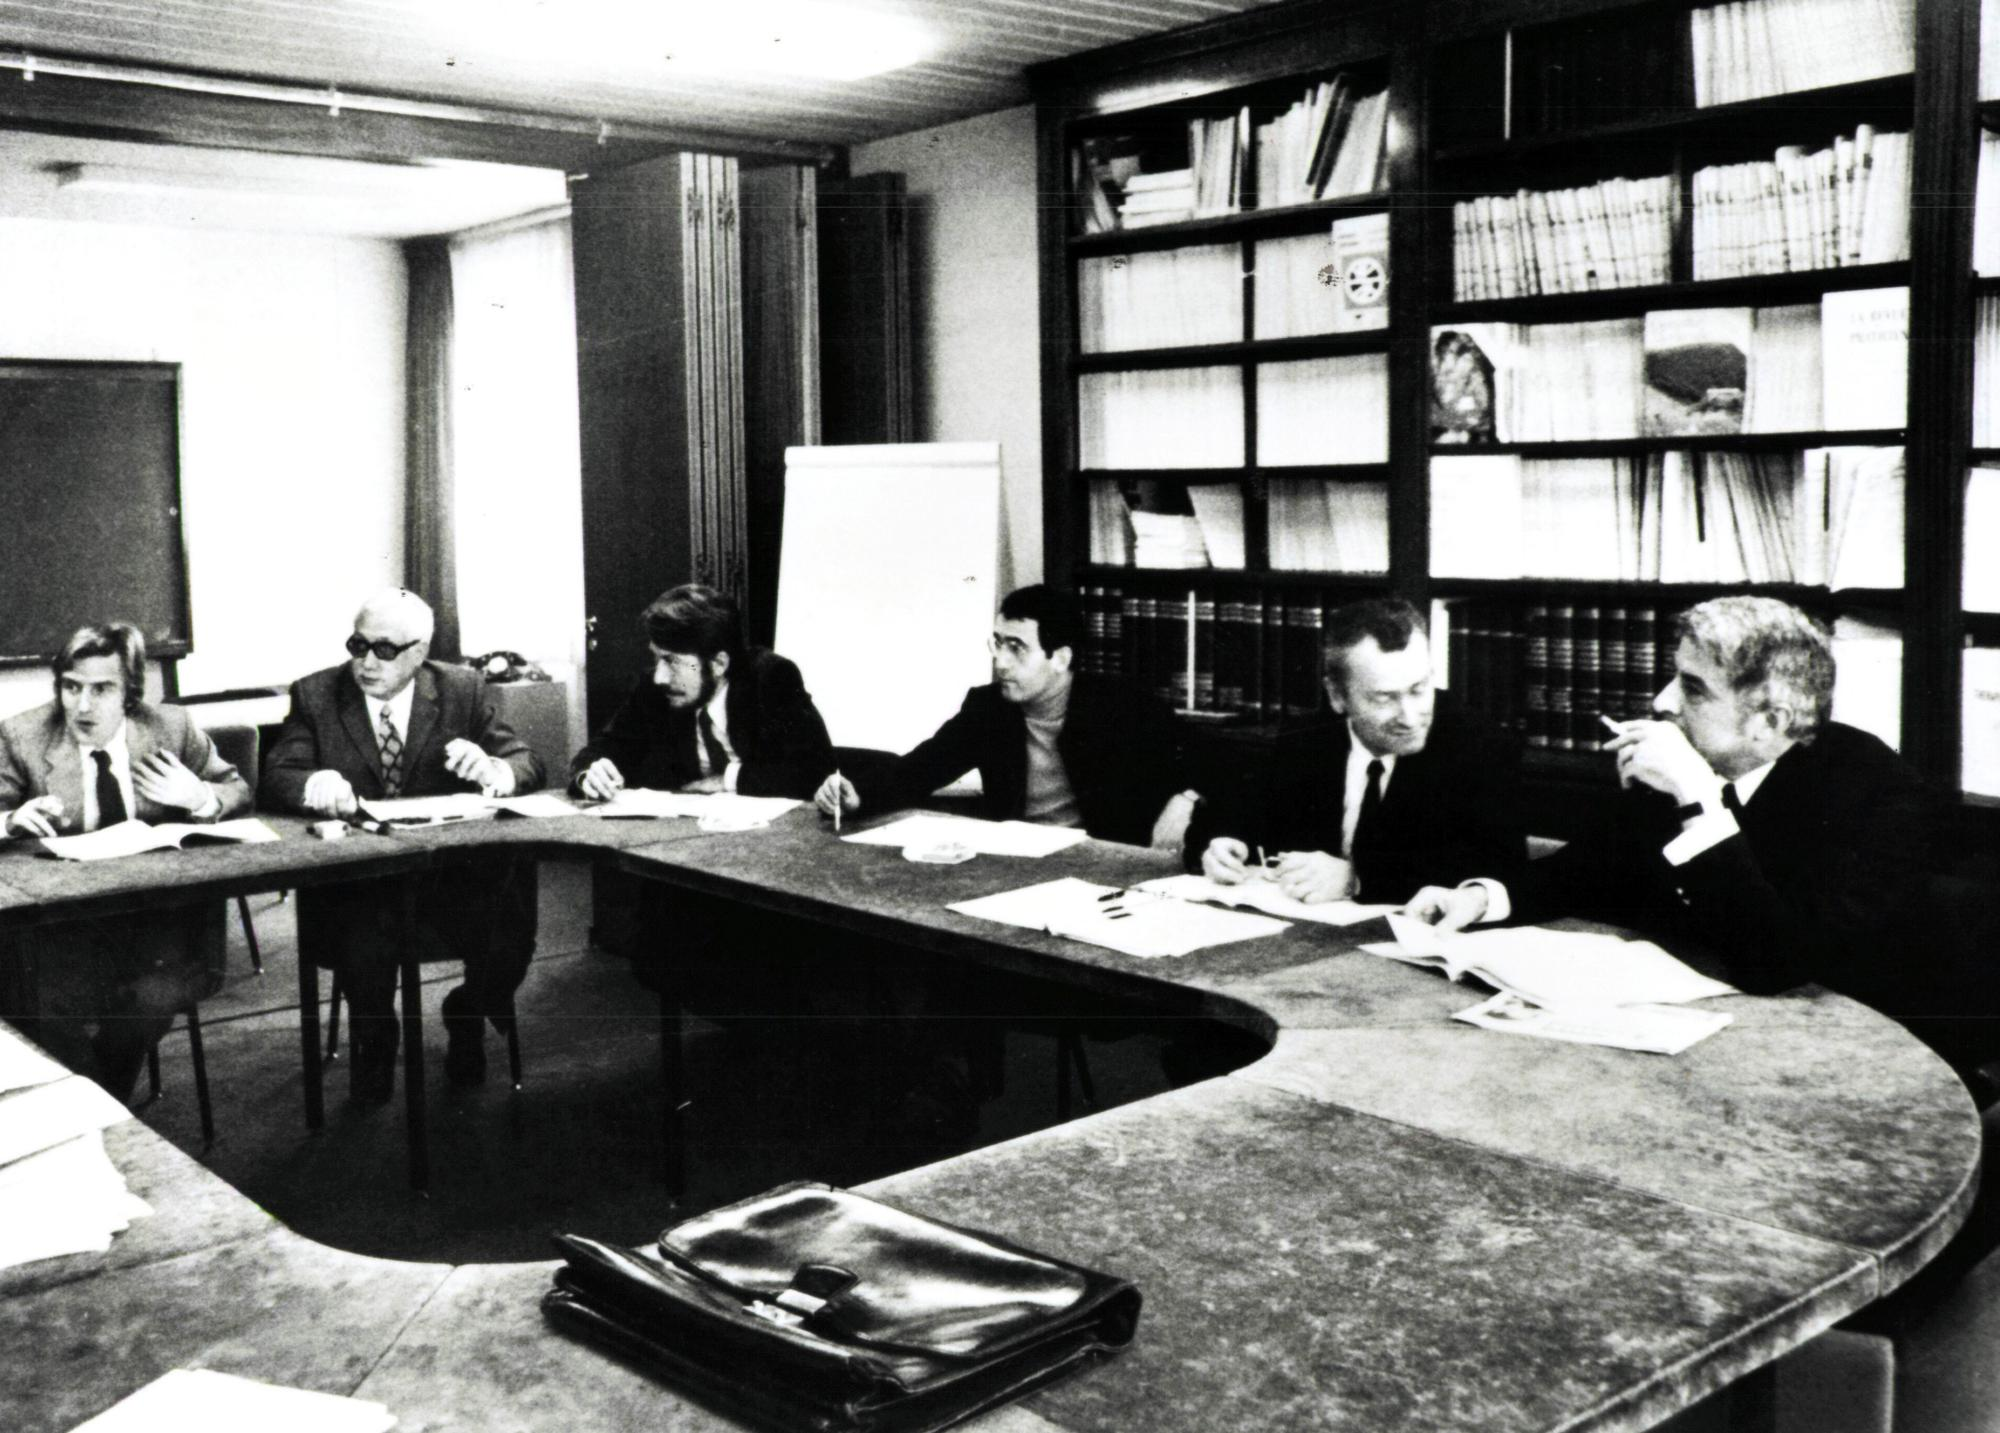 An old black and white photo of a group of men sitting around a large office table with bookshelves in the background.